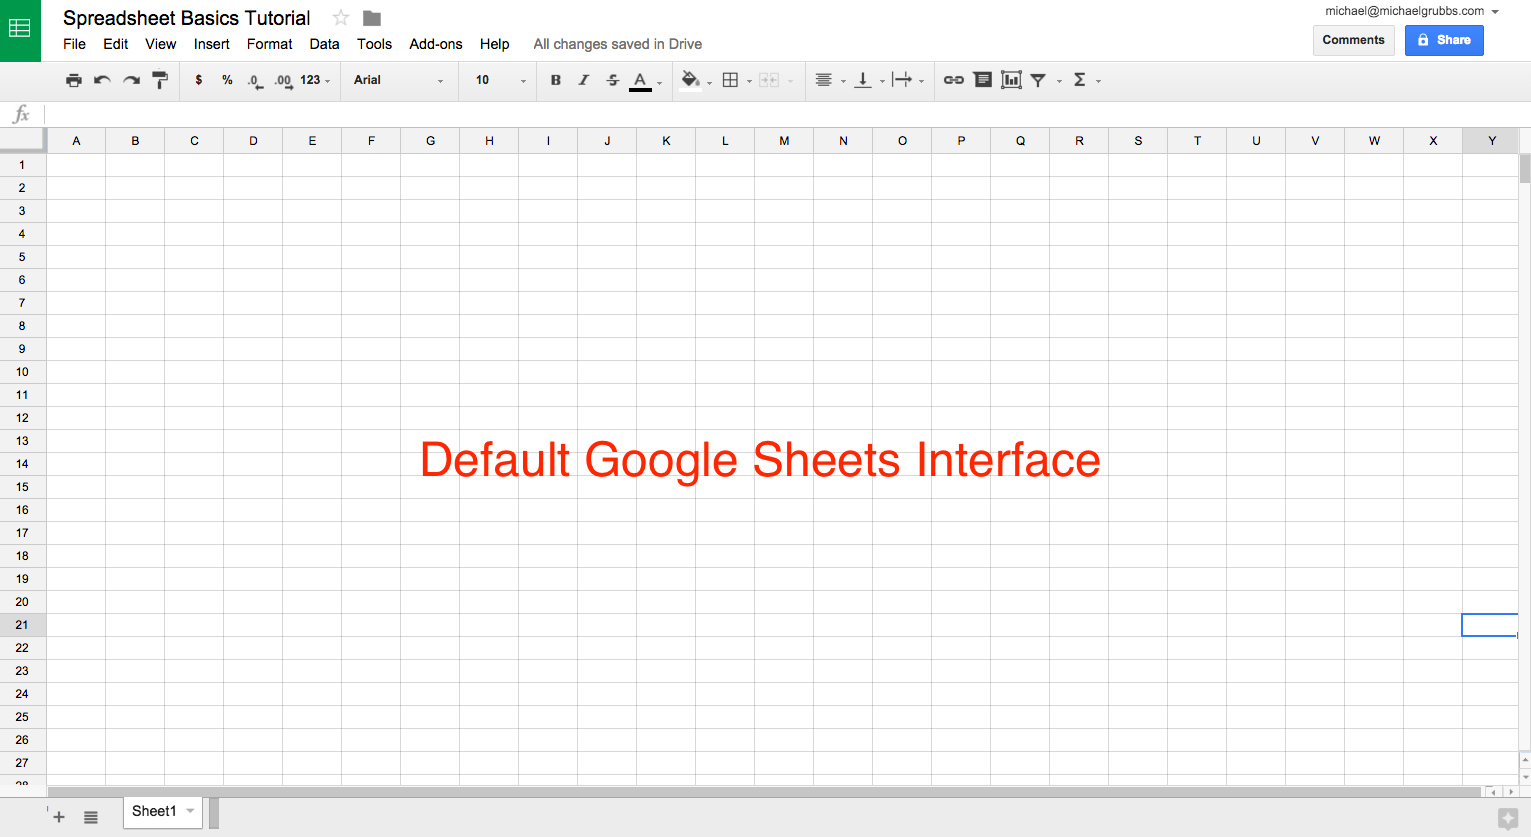 Job Search Spreadsheet Google Sheets pertaining to Google Sheets 101: The Beginner's Guide To Online Spreadsheets  The